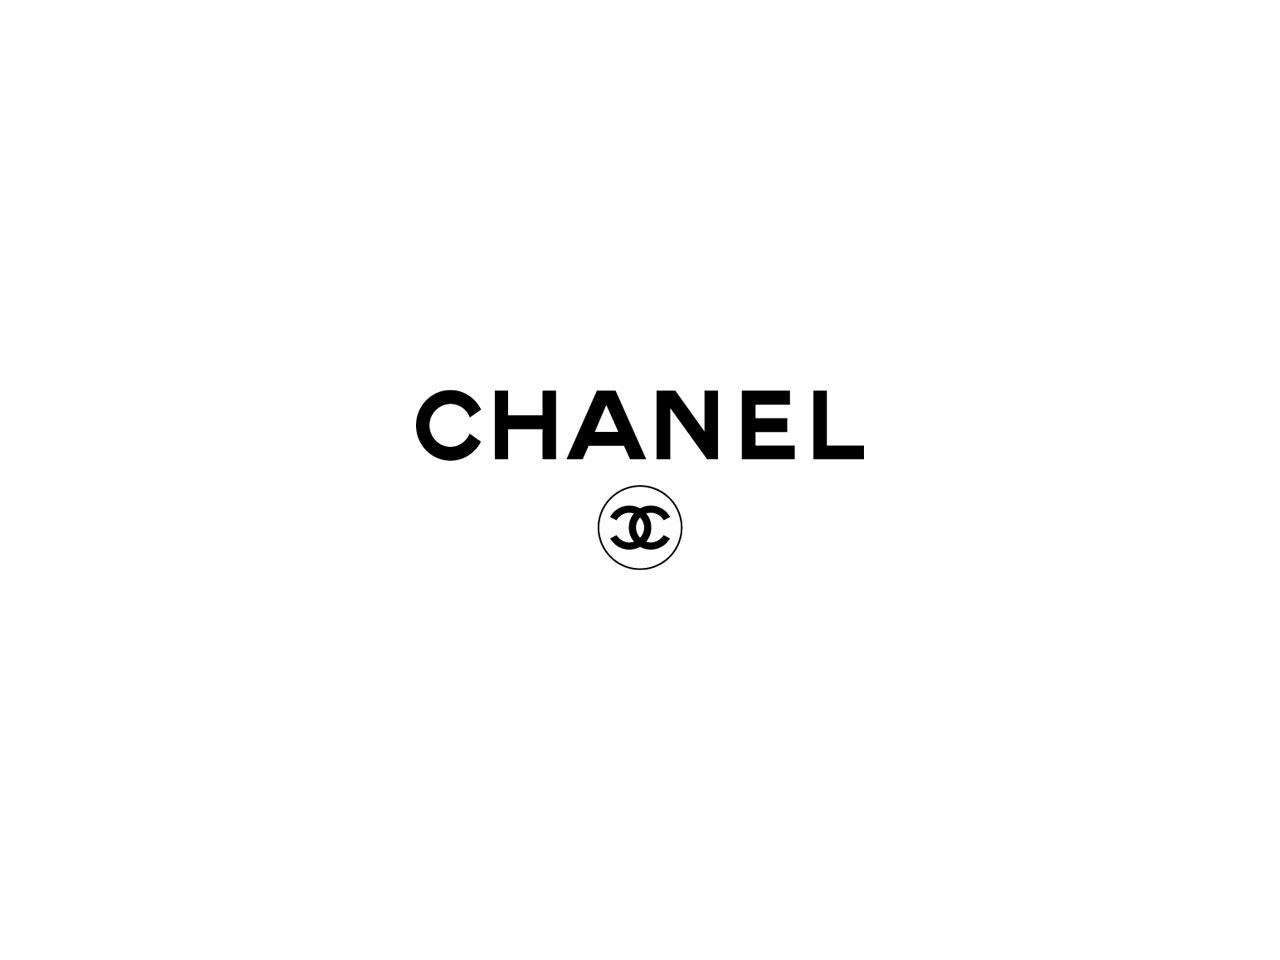 44 Coco Chanel Logo Wallpaper On Wallpapersafari